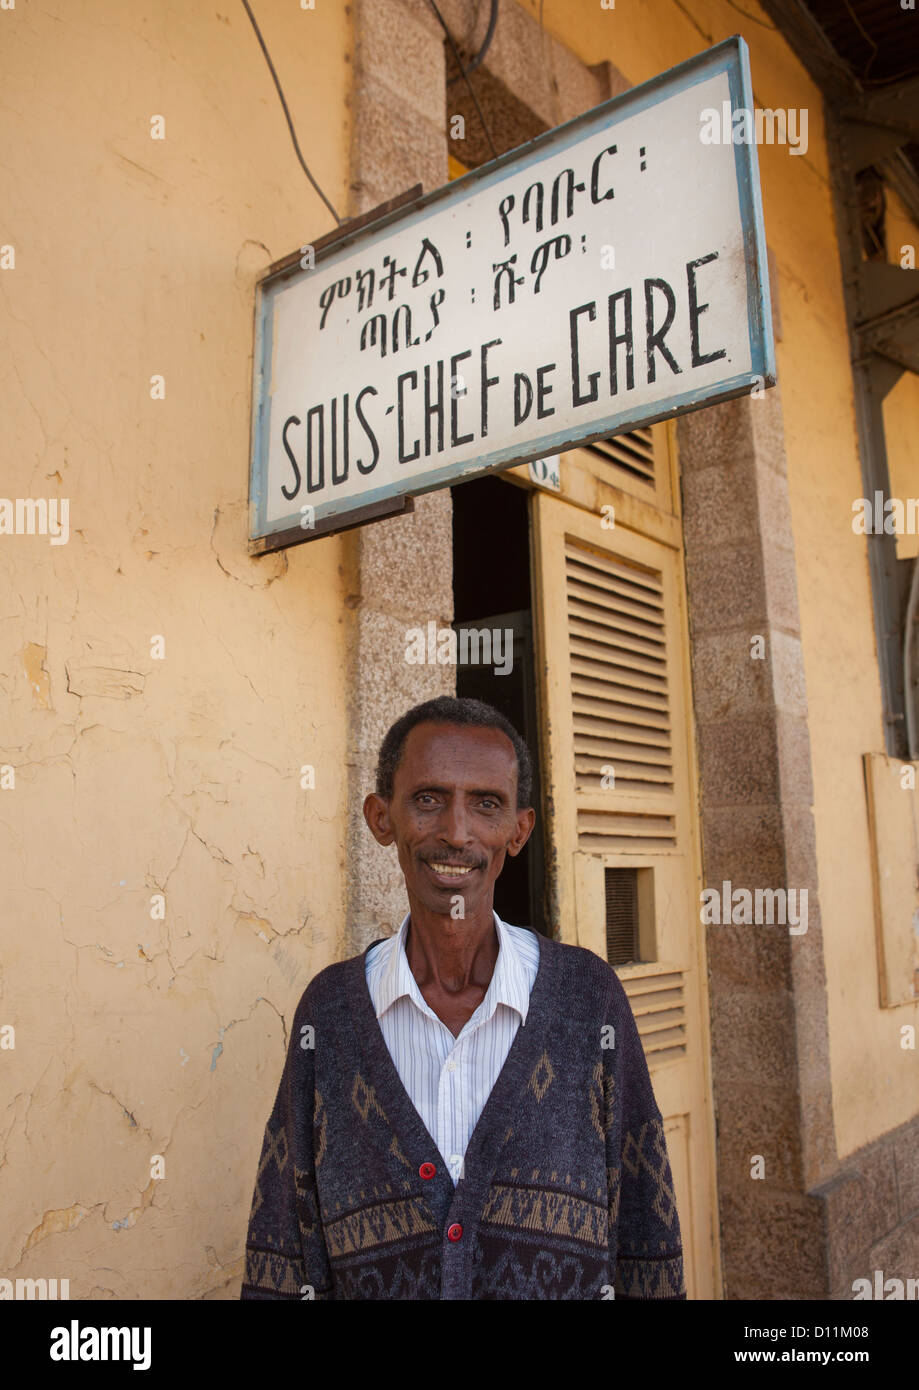 Portrait Of Dire Dawa Train Station Deputy Manager Outside His Office, Ethiopia - Stock Image